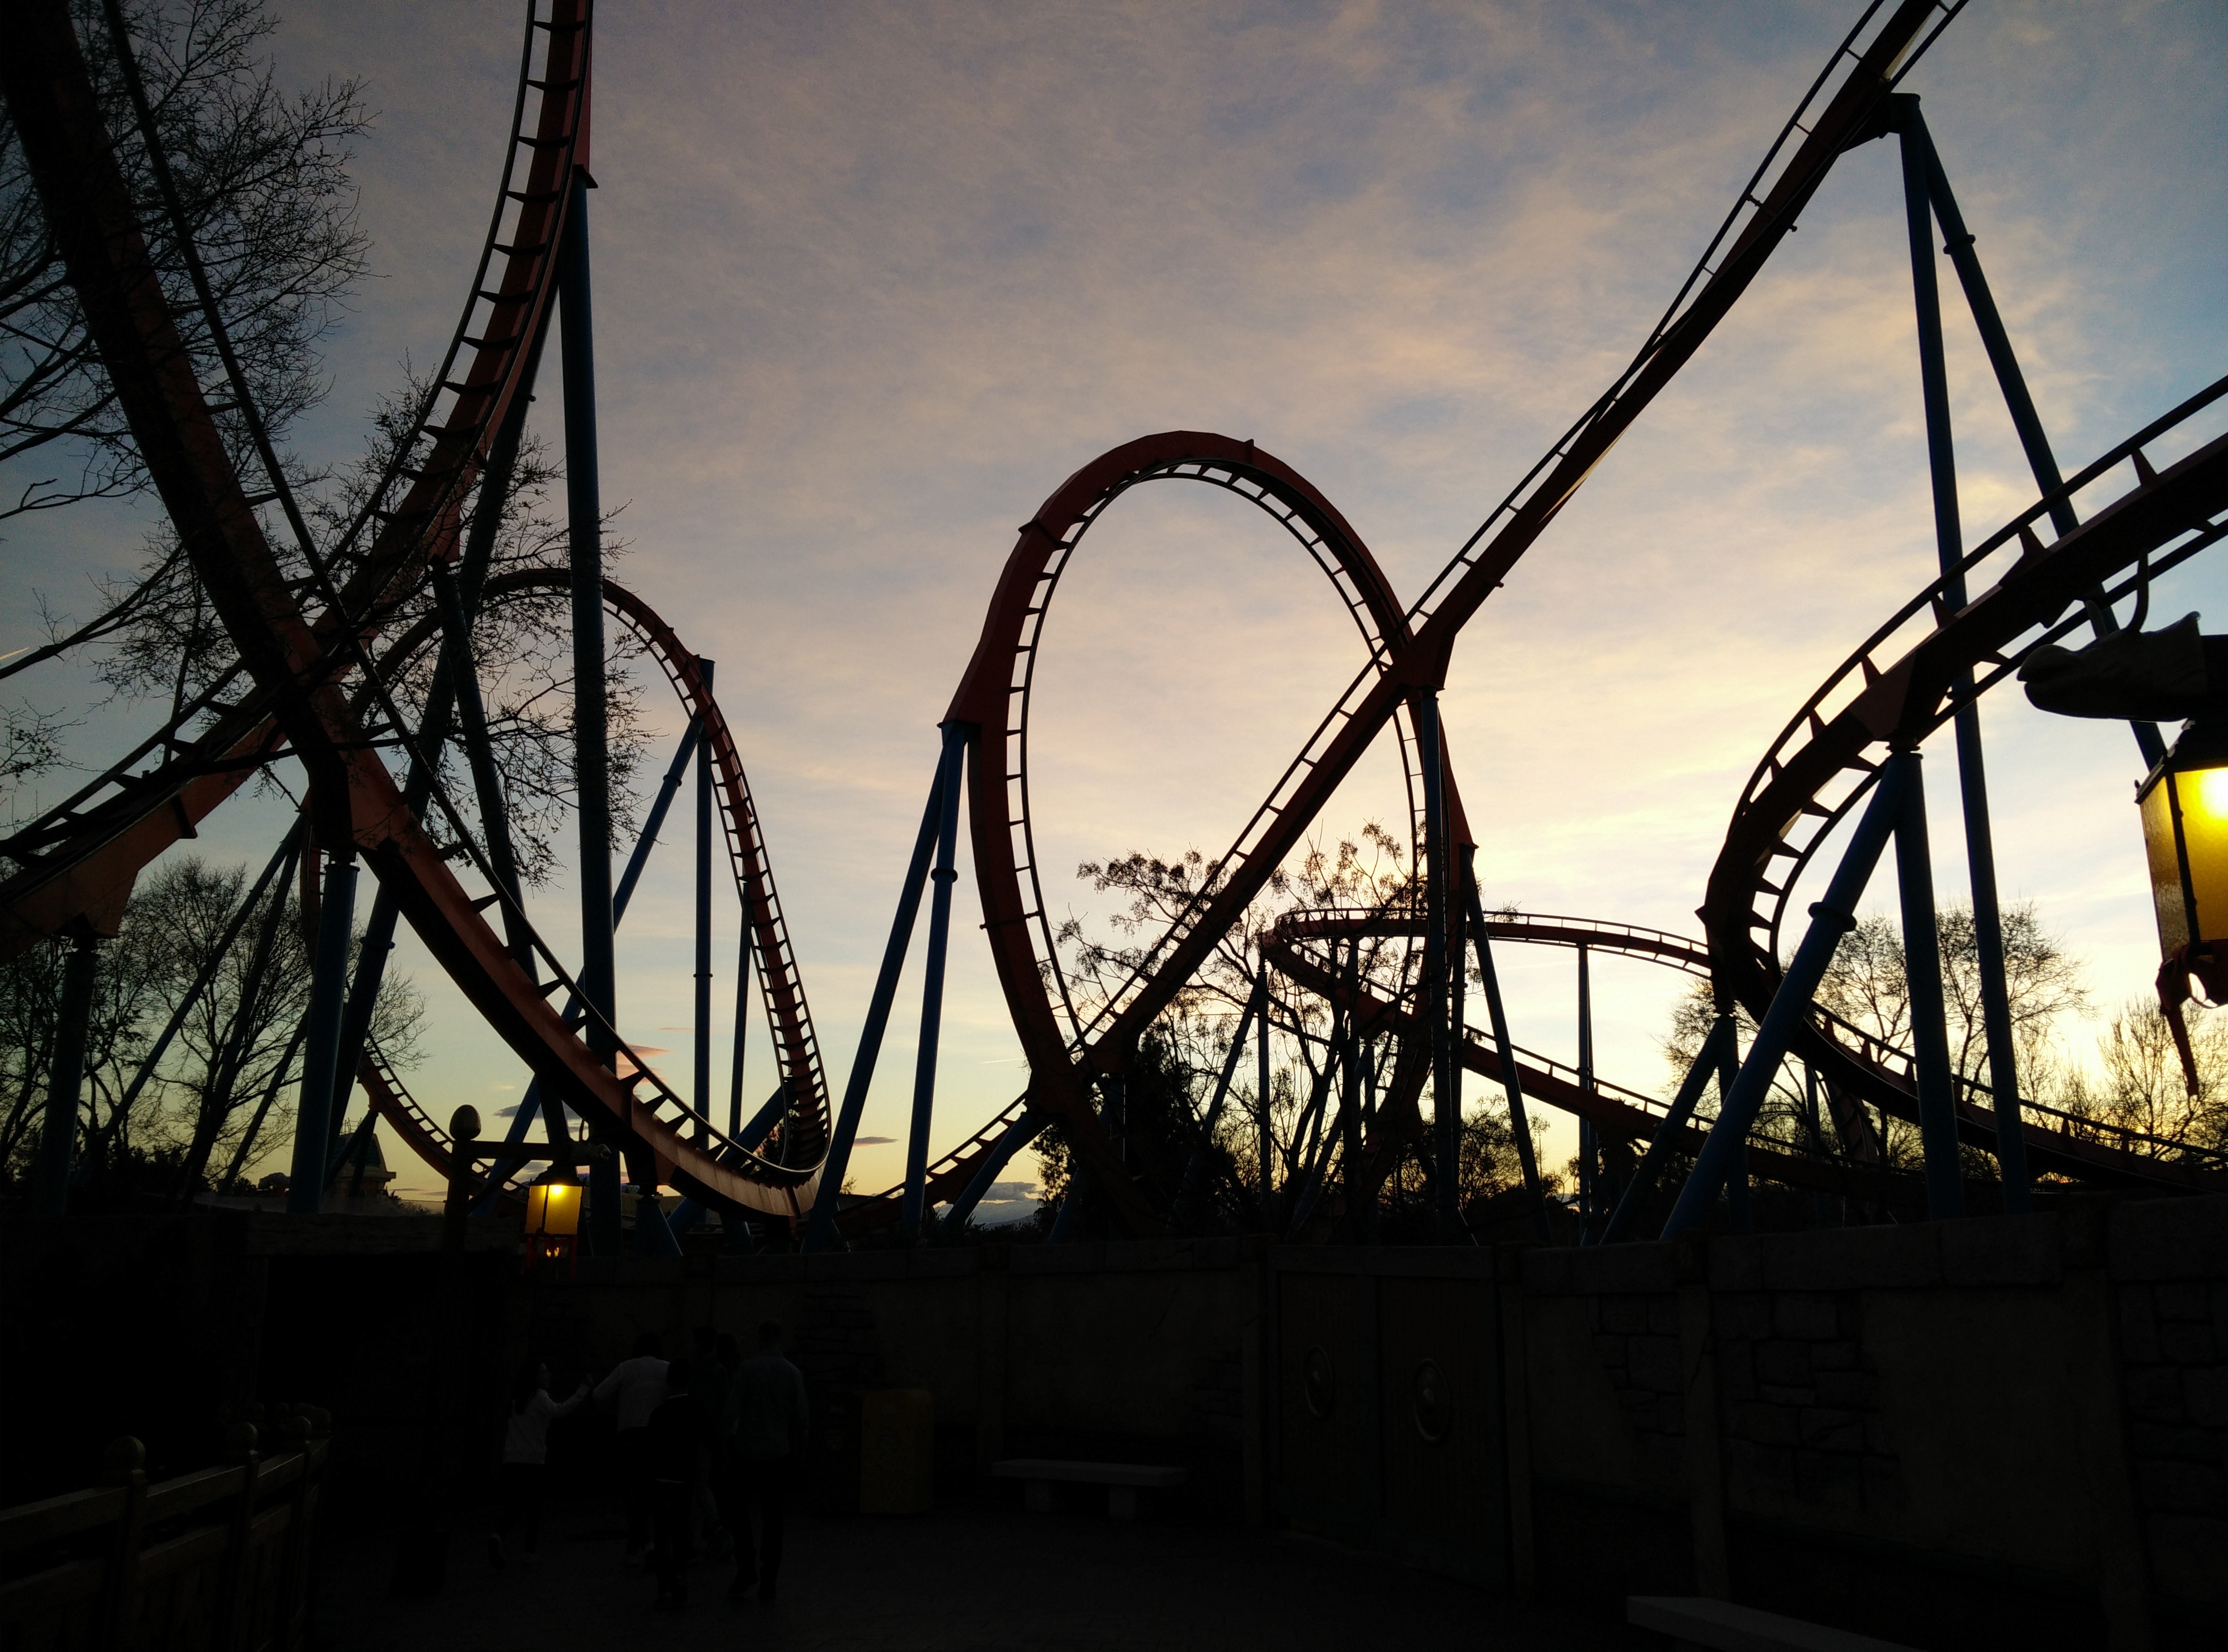 A rollercoaster during a sunset